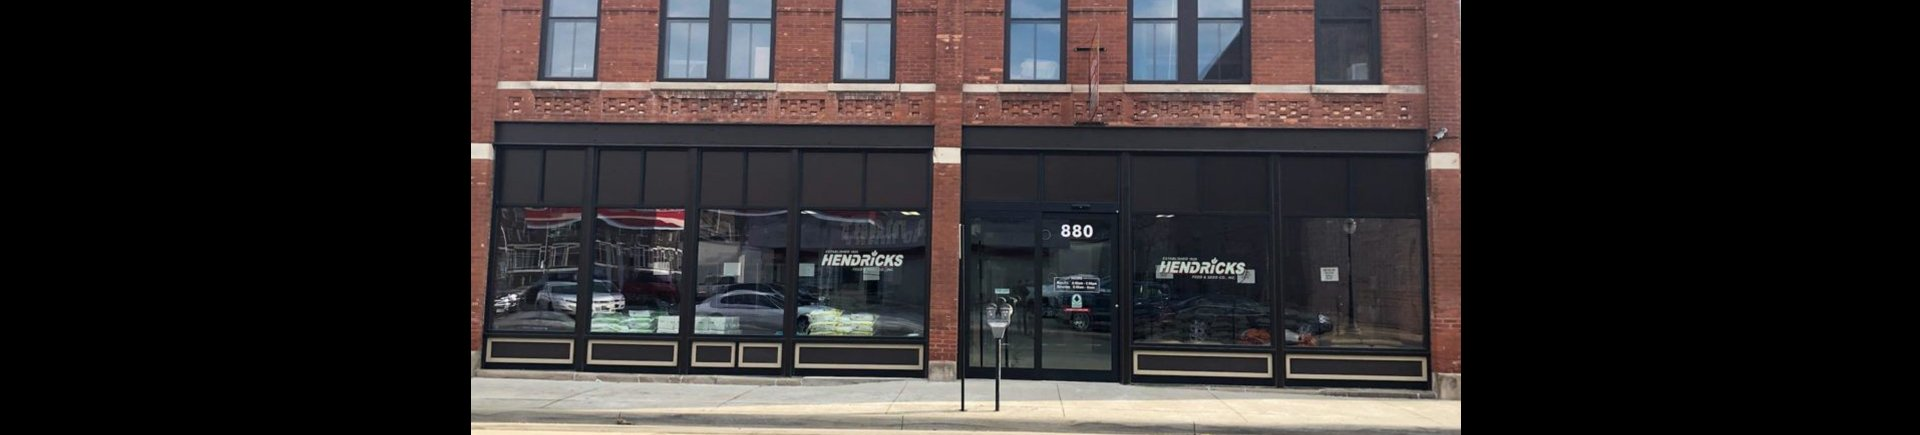 Photo of the outside of Hendricks. The store front is red brick with big windows and black window casings. There is a parking meter in front of the door.